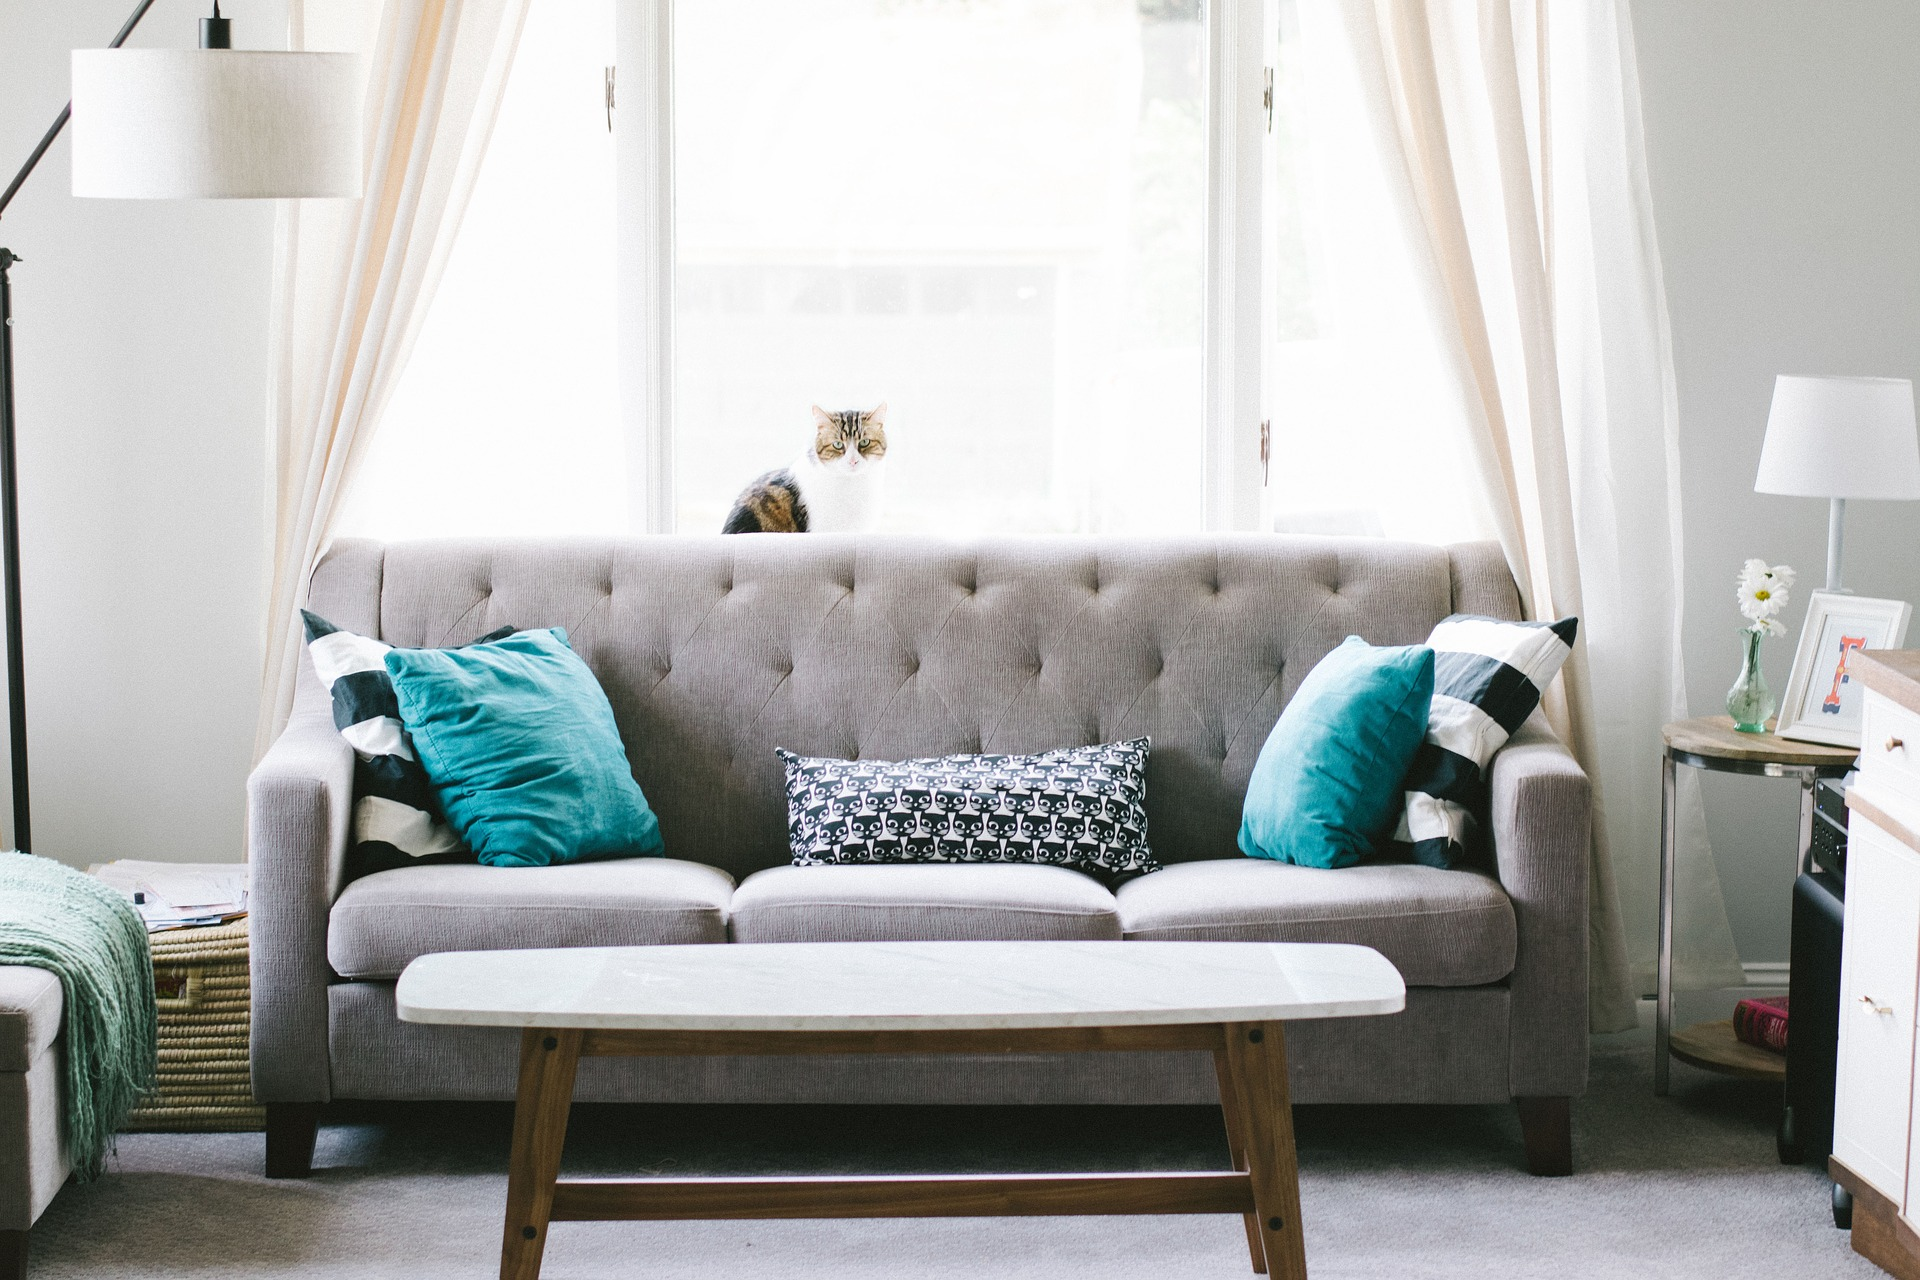 How to Incorporate Cozy Minimalist Design in Your Home Through Color